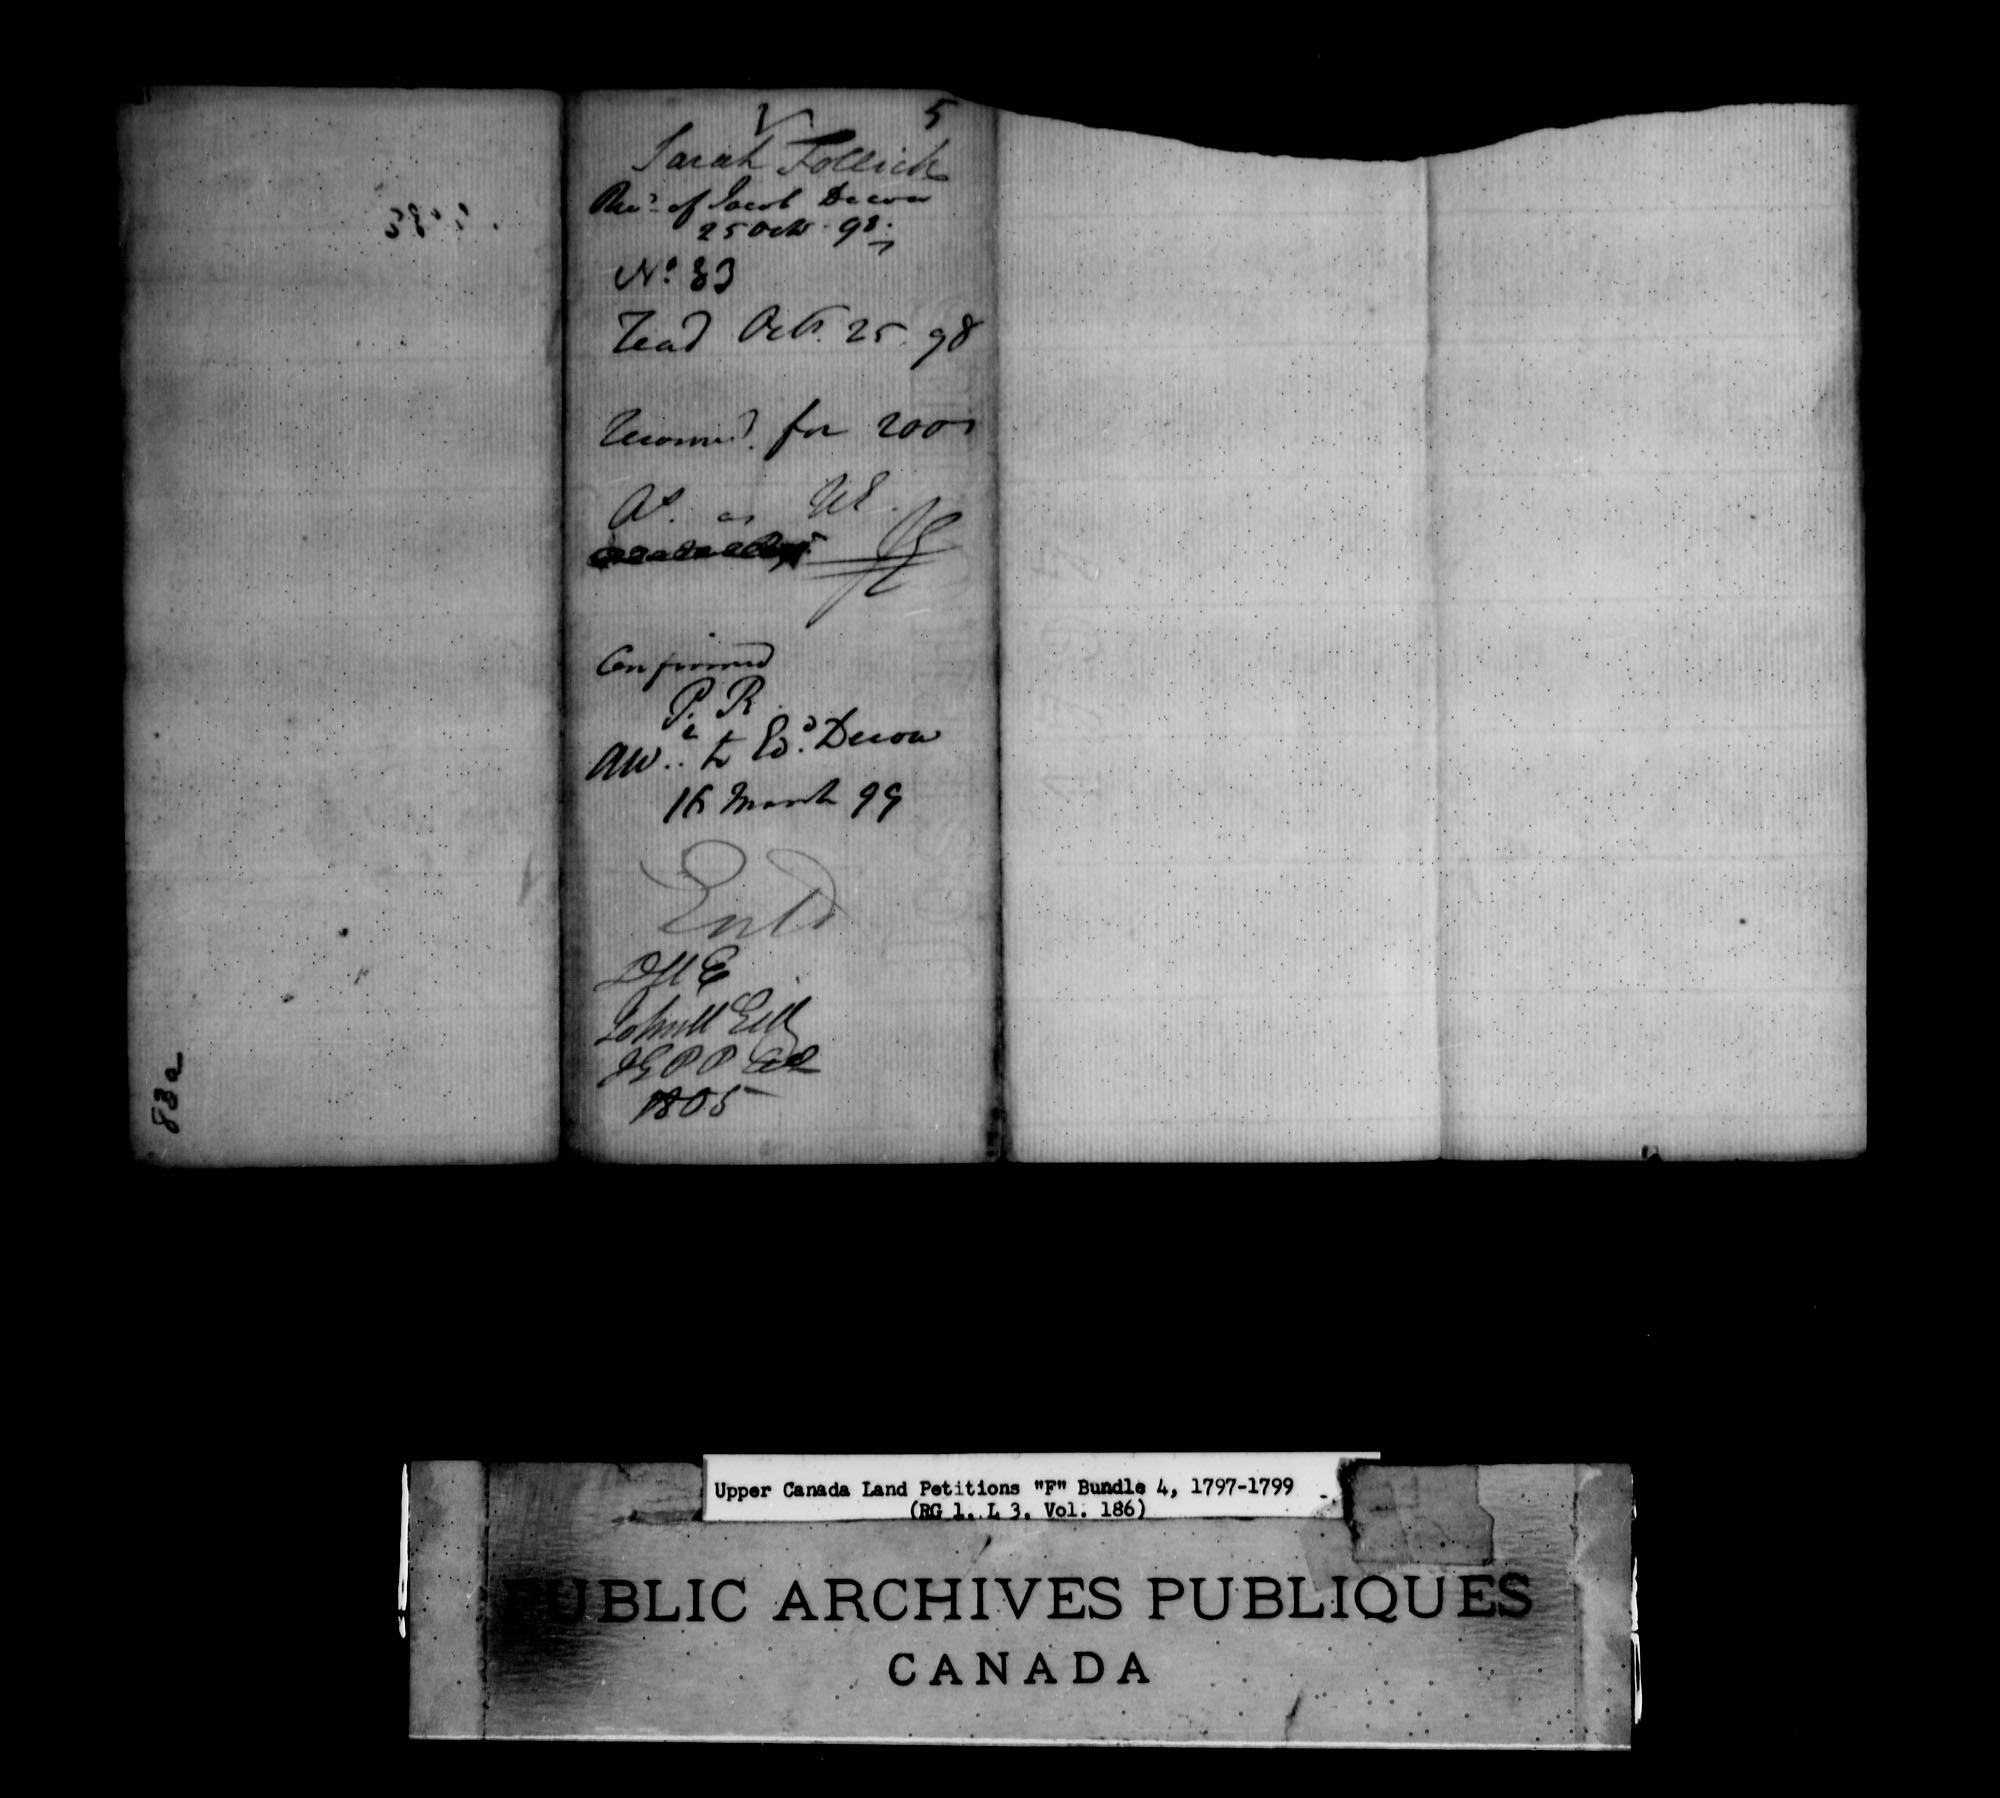 Title: Upper Canada Land Petitions (1763-1865) - Mikan Number: 205131 - Microform: c-1894